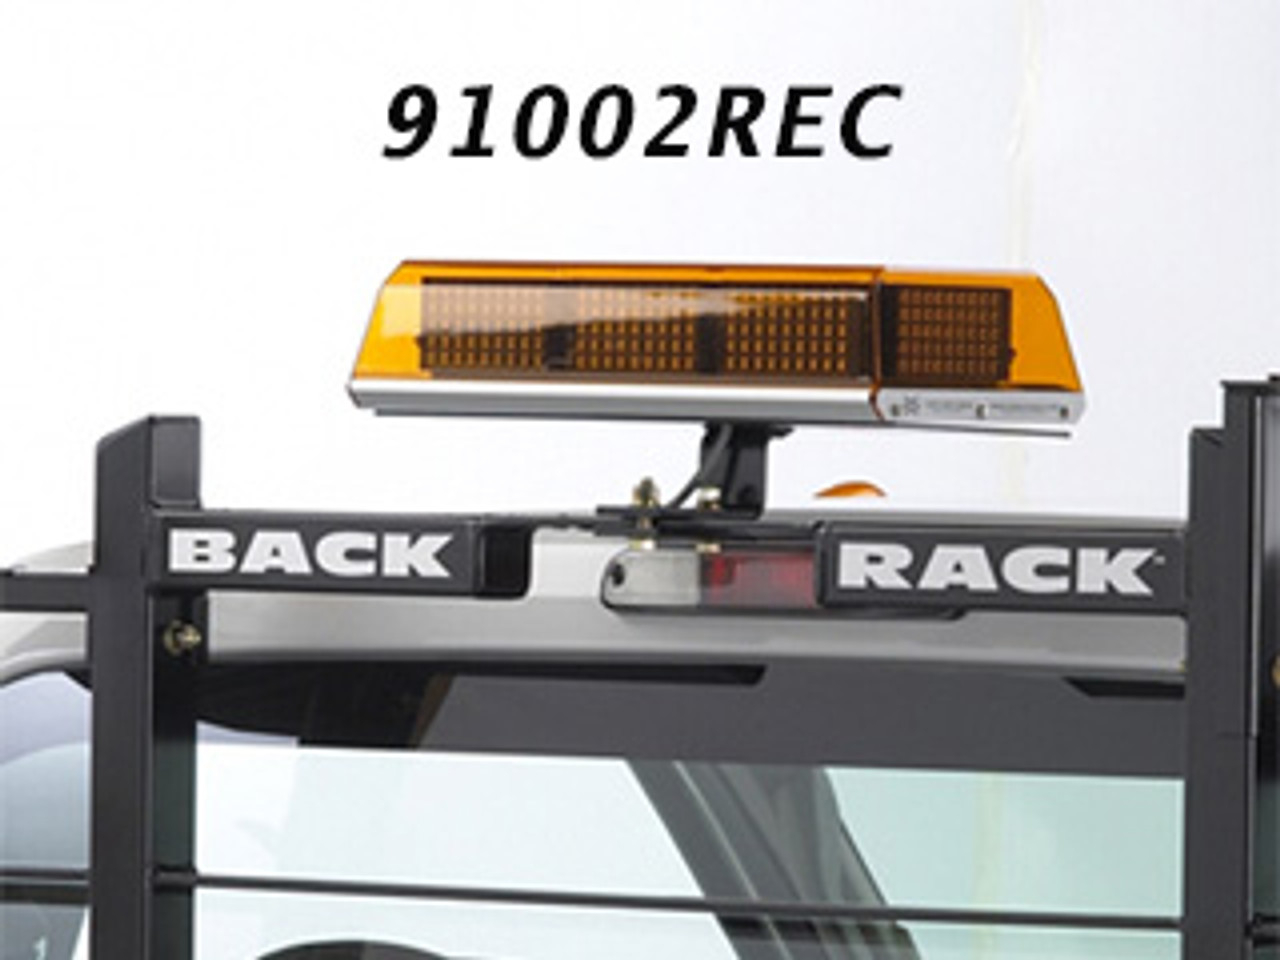 backrack truck mounting accessories